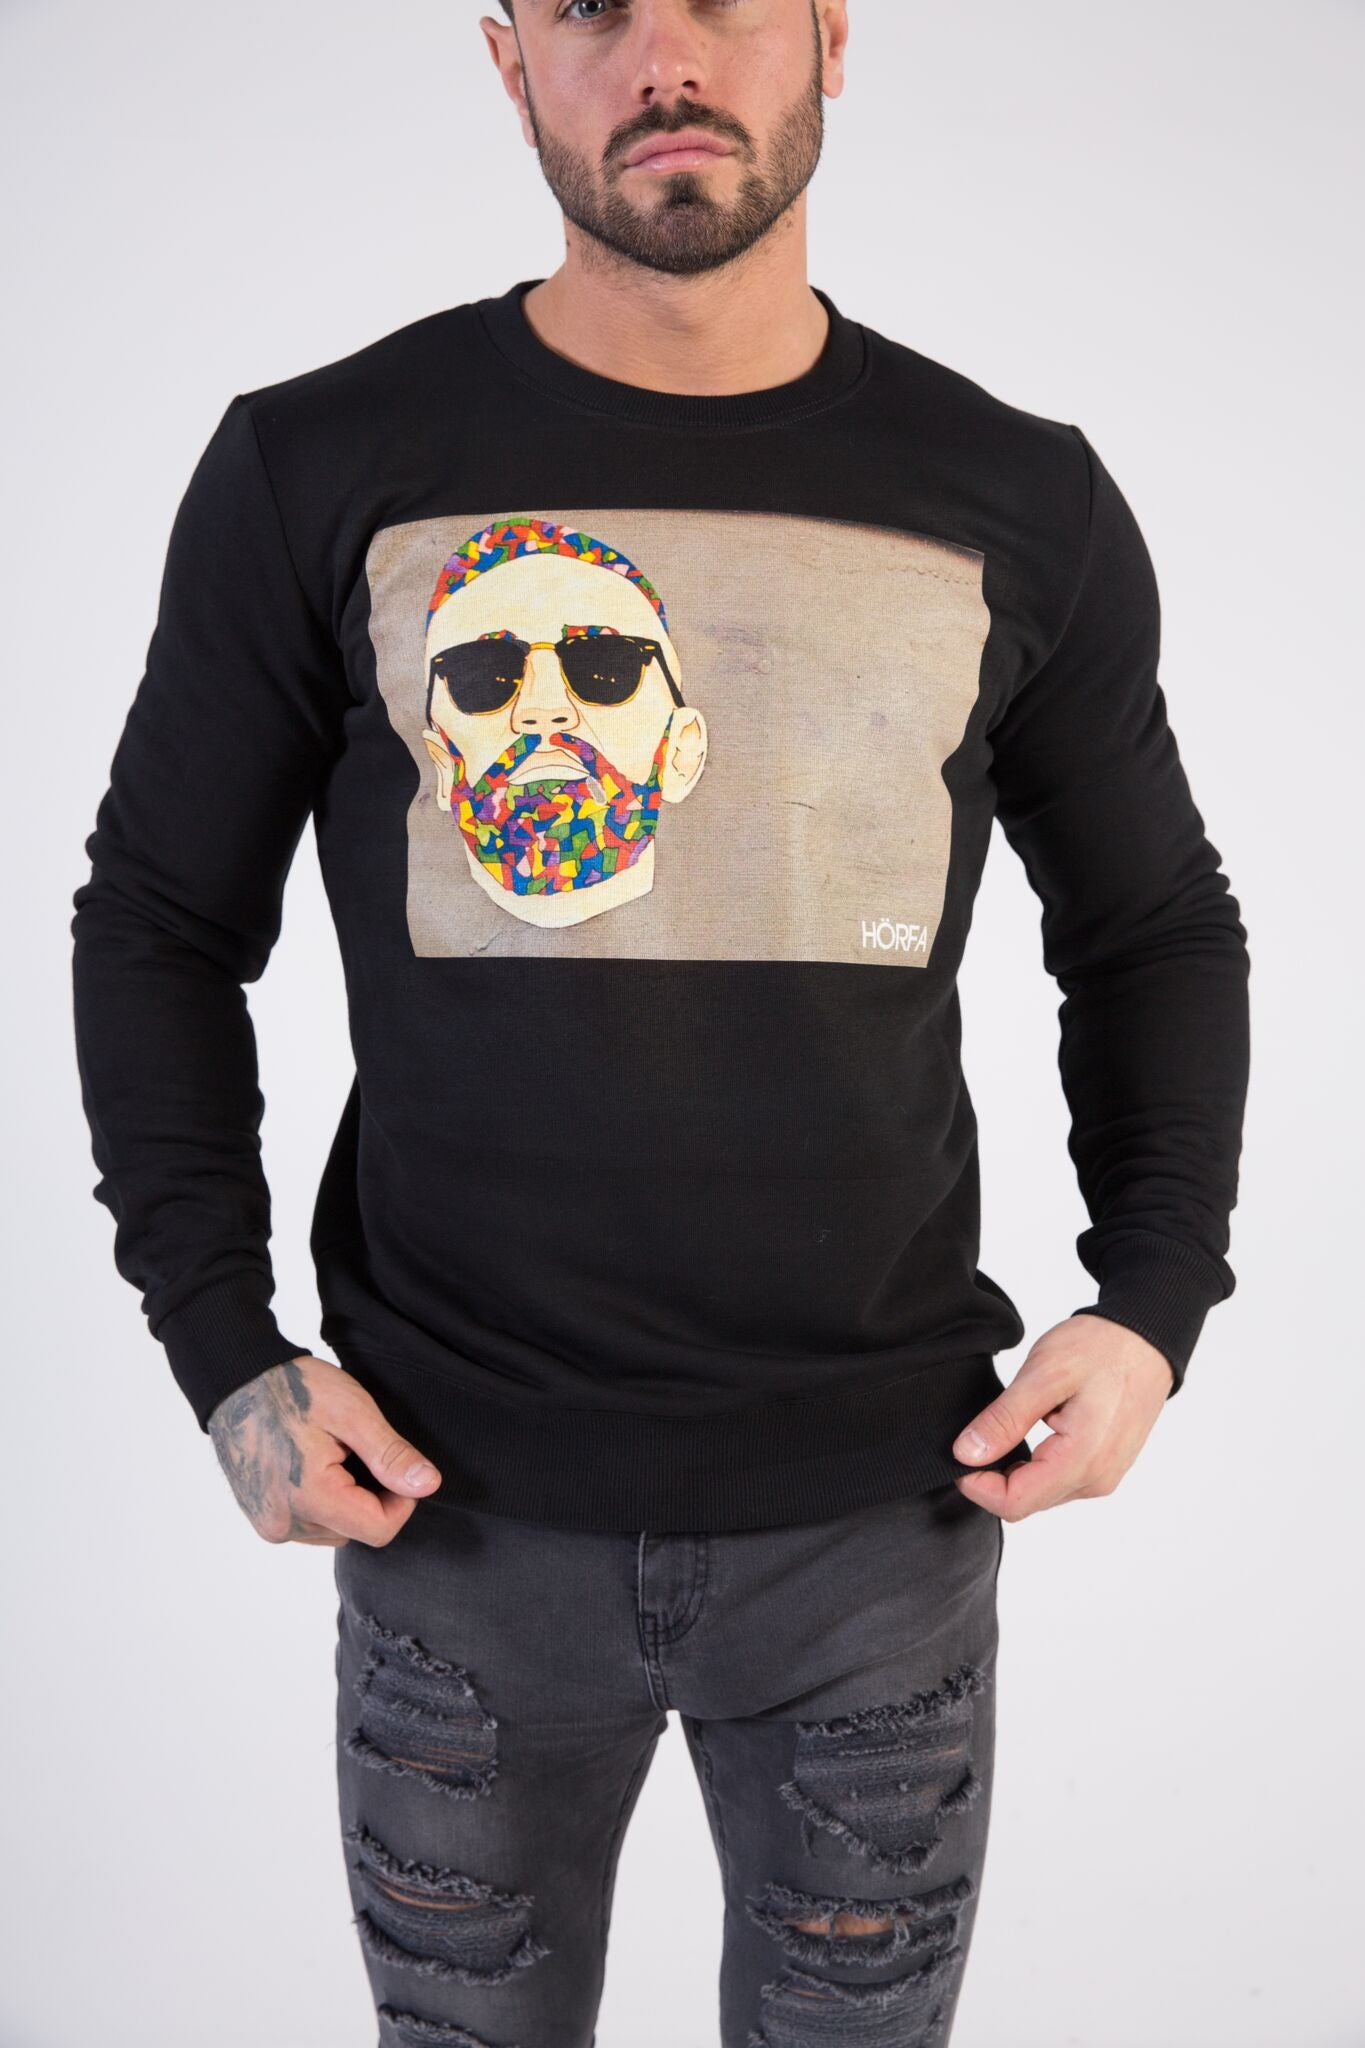 GRAFFITI SUNGLASSES Sweatshirt - HÖRFA is a men's global fashion brand that provides products such as Fashionable Watches, Wallets, Sunglasses, Belts, Beard and Male Grooming Products